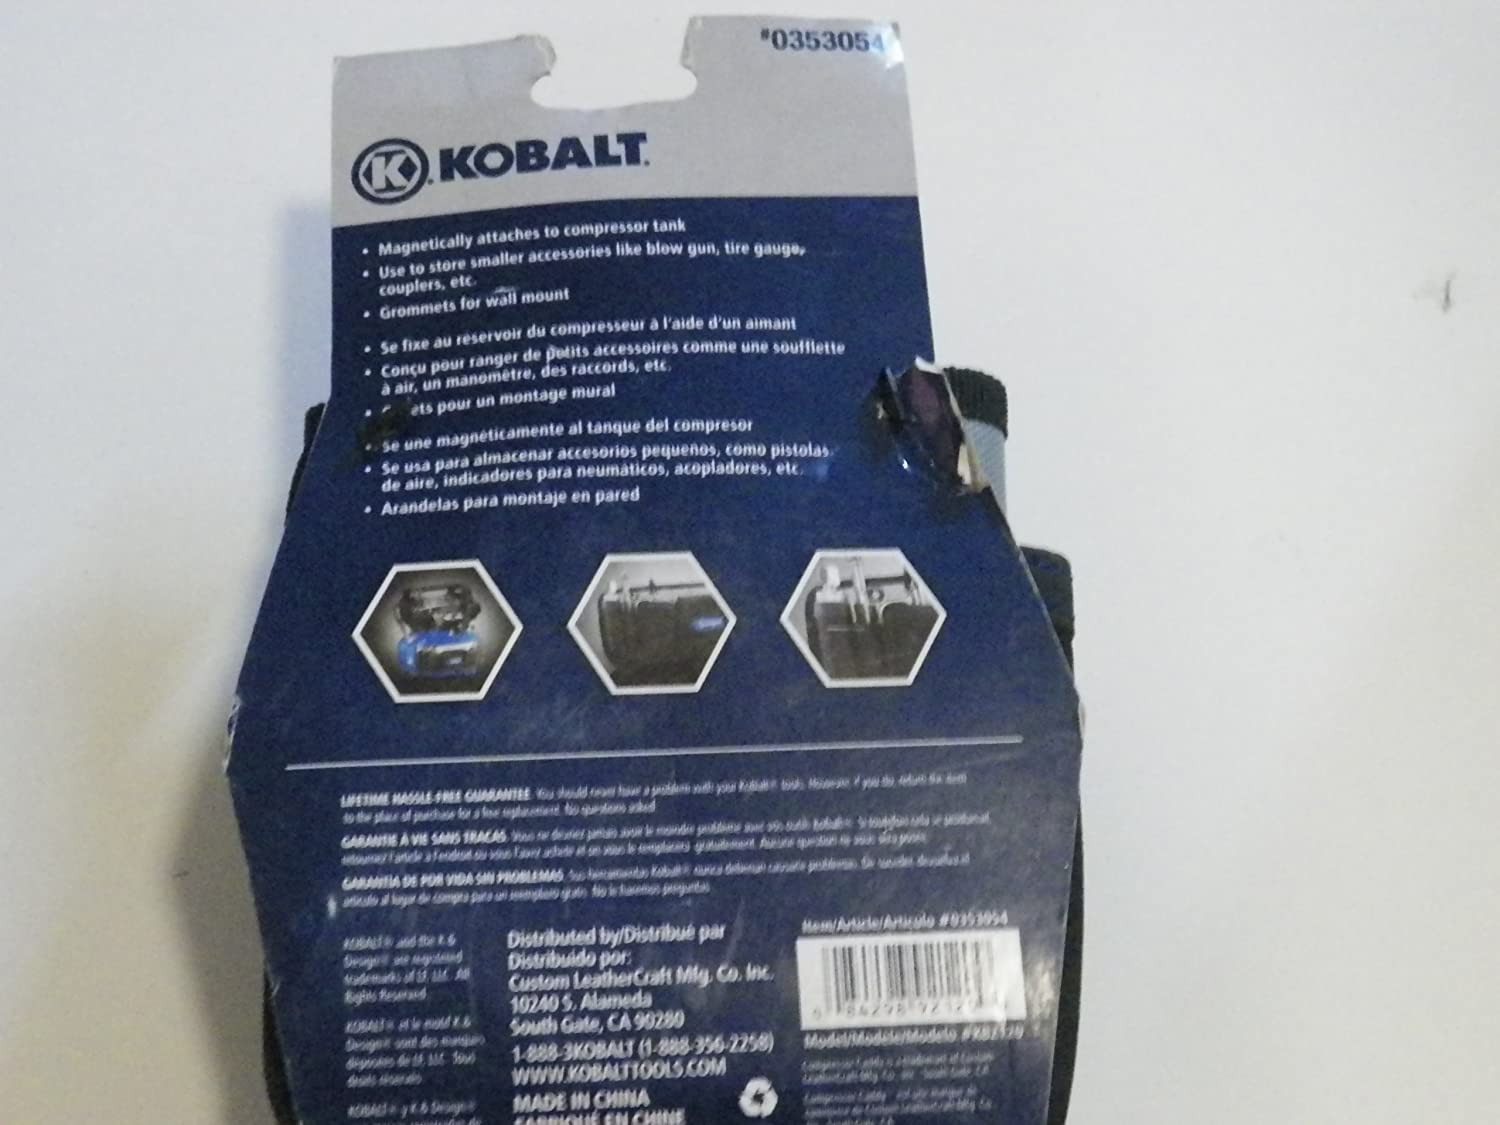 Kobalt Compressor and Tool Box Caddy Item#353054 Model# KB2120 UPC#084298921209 - - Amazon.com